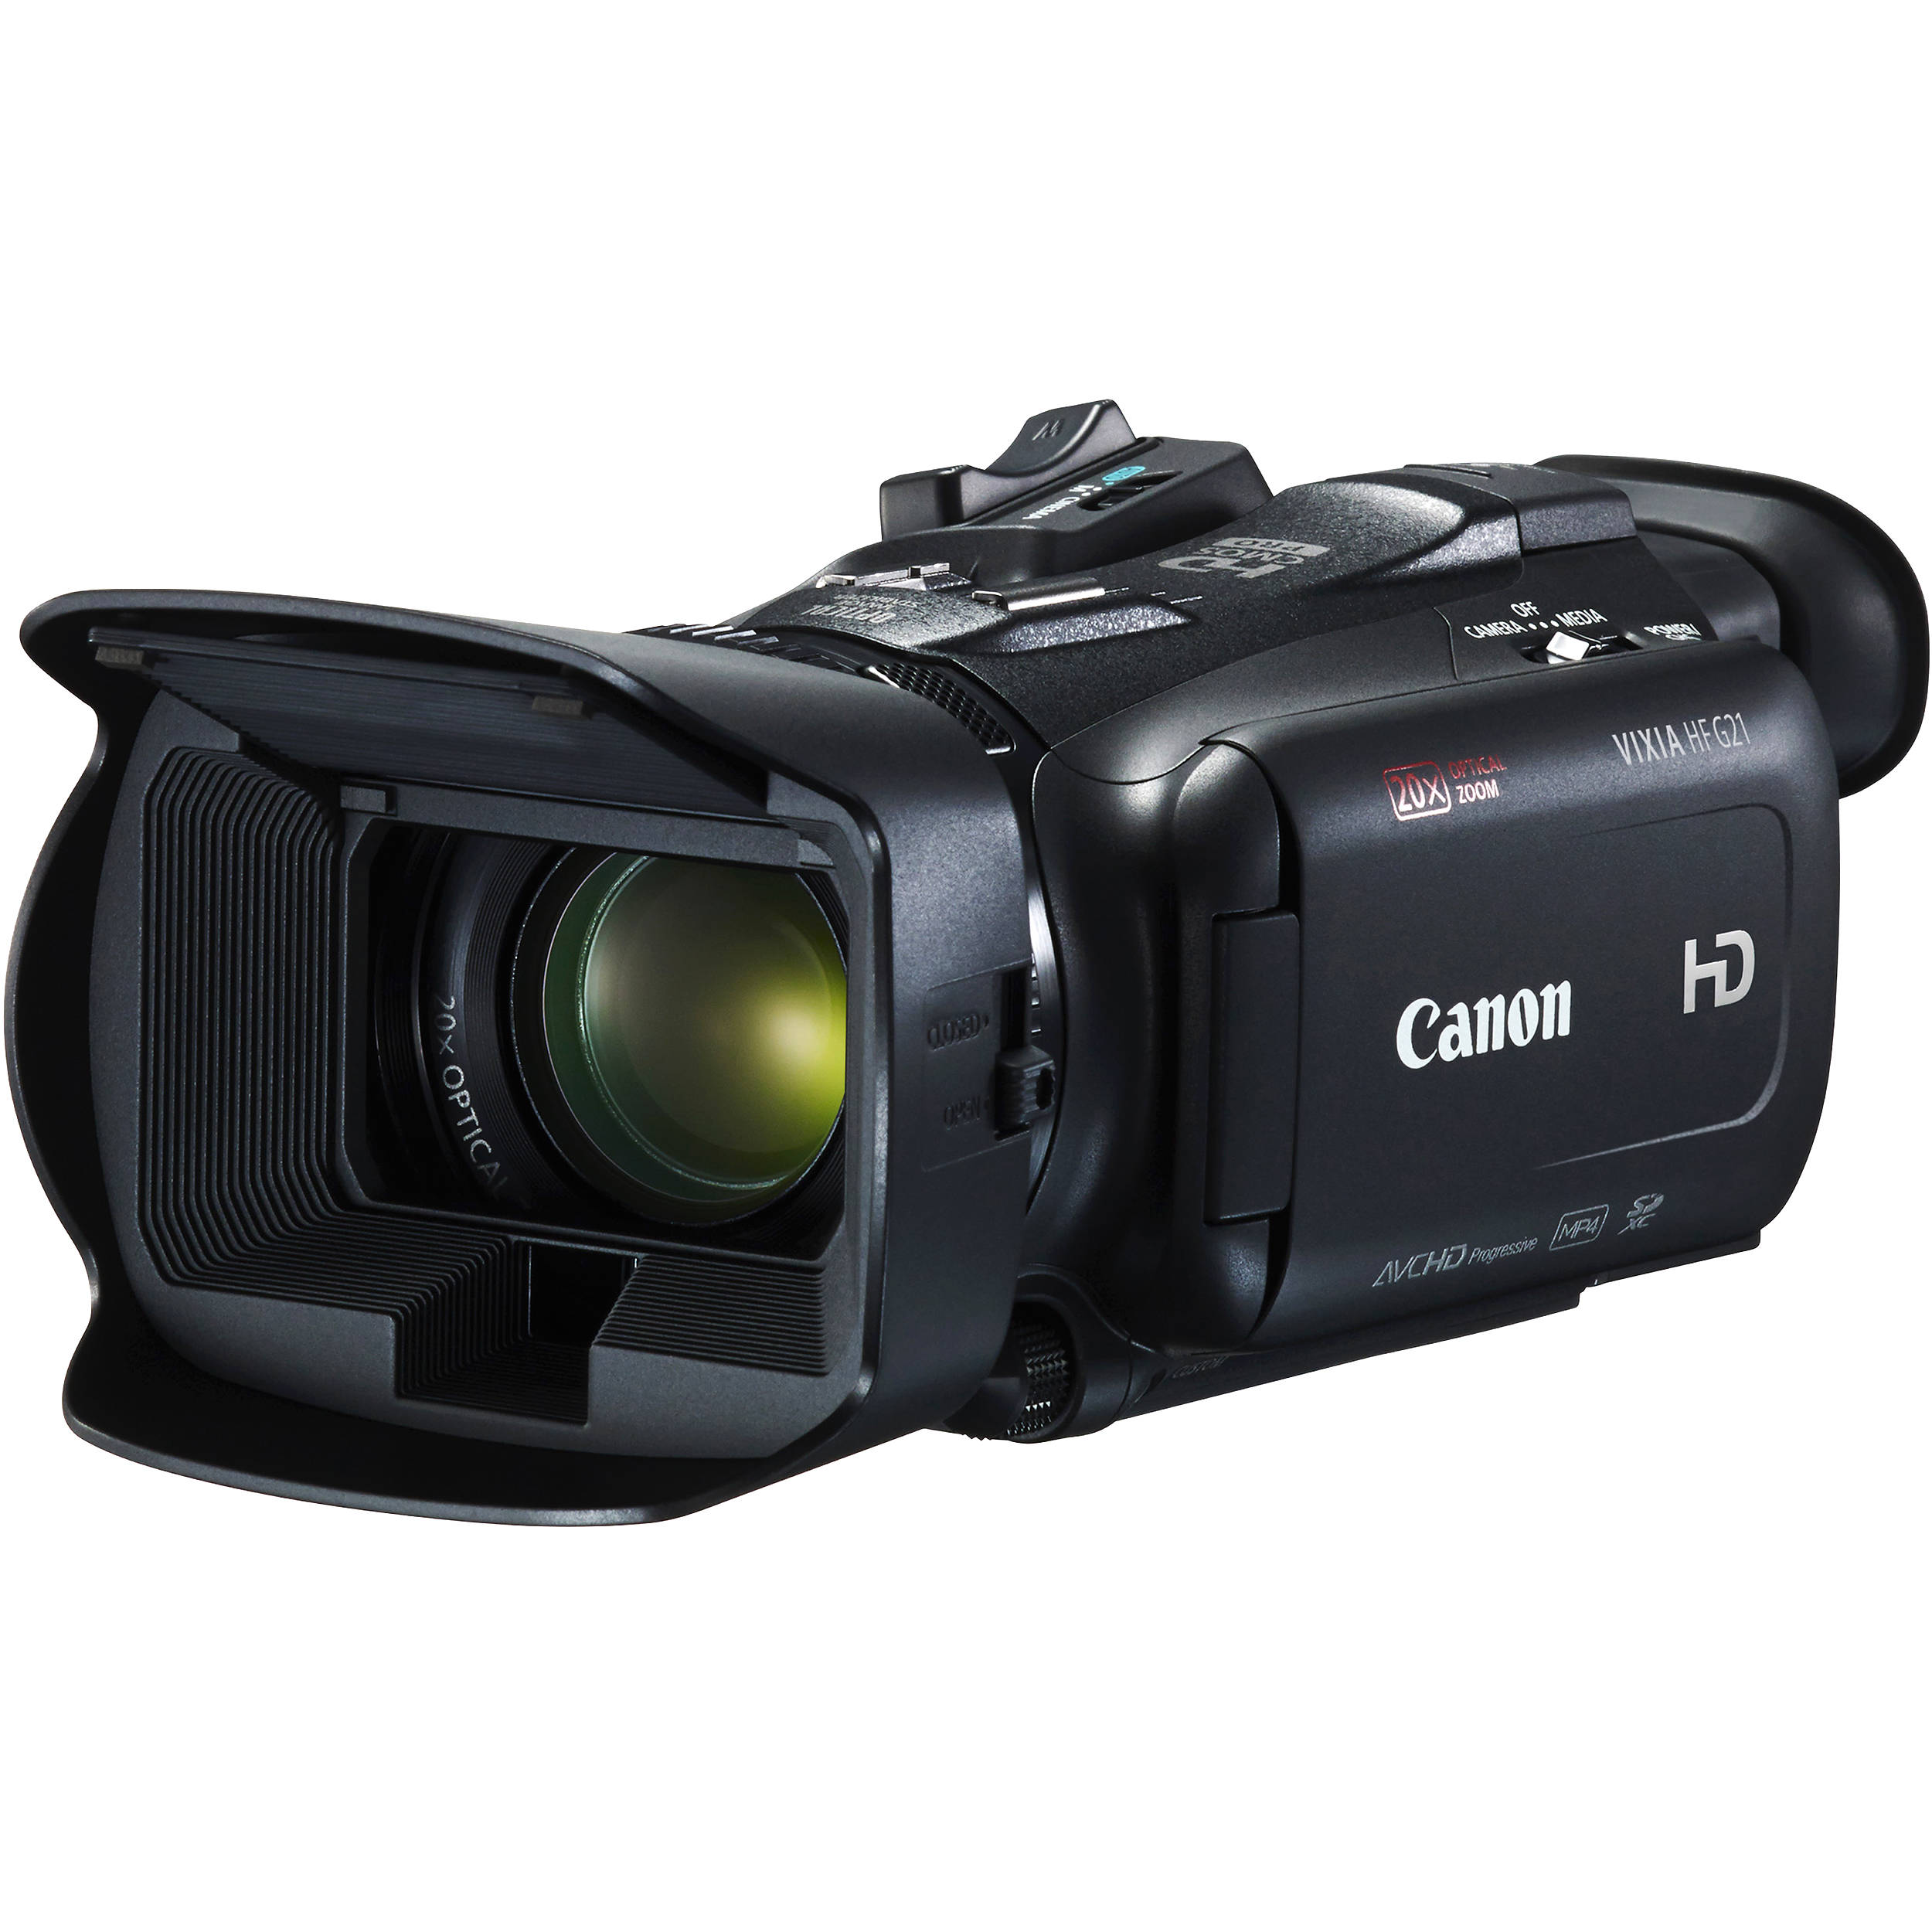 canon vixia hf g21 full hd camcorder 2404c002 b&h photo video